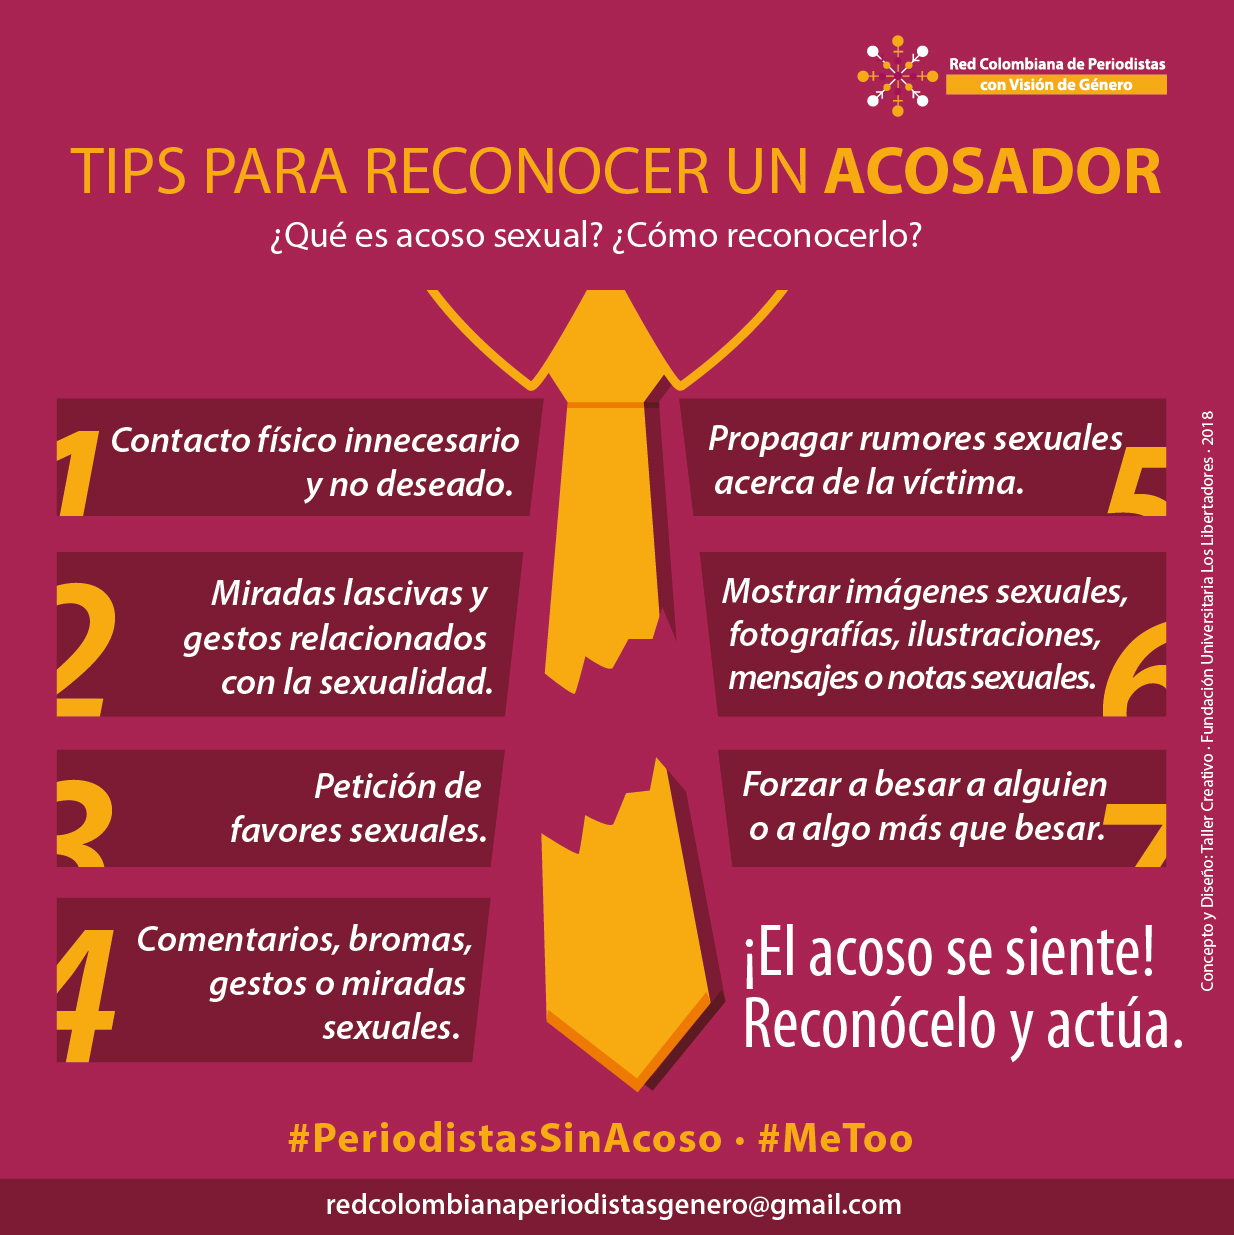 Red Colombiana de PeriodismoFinales_face tips